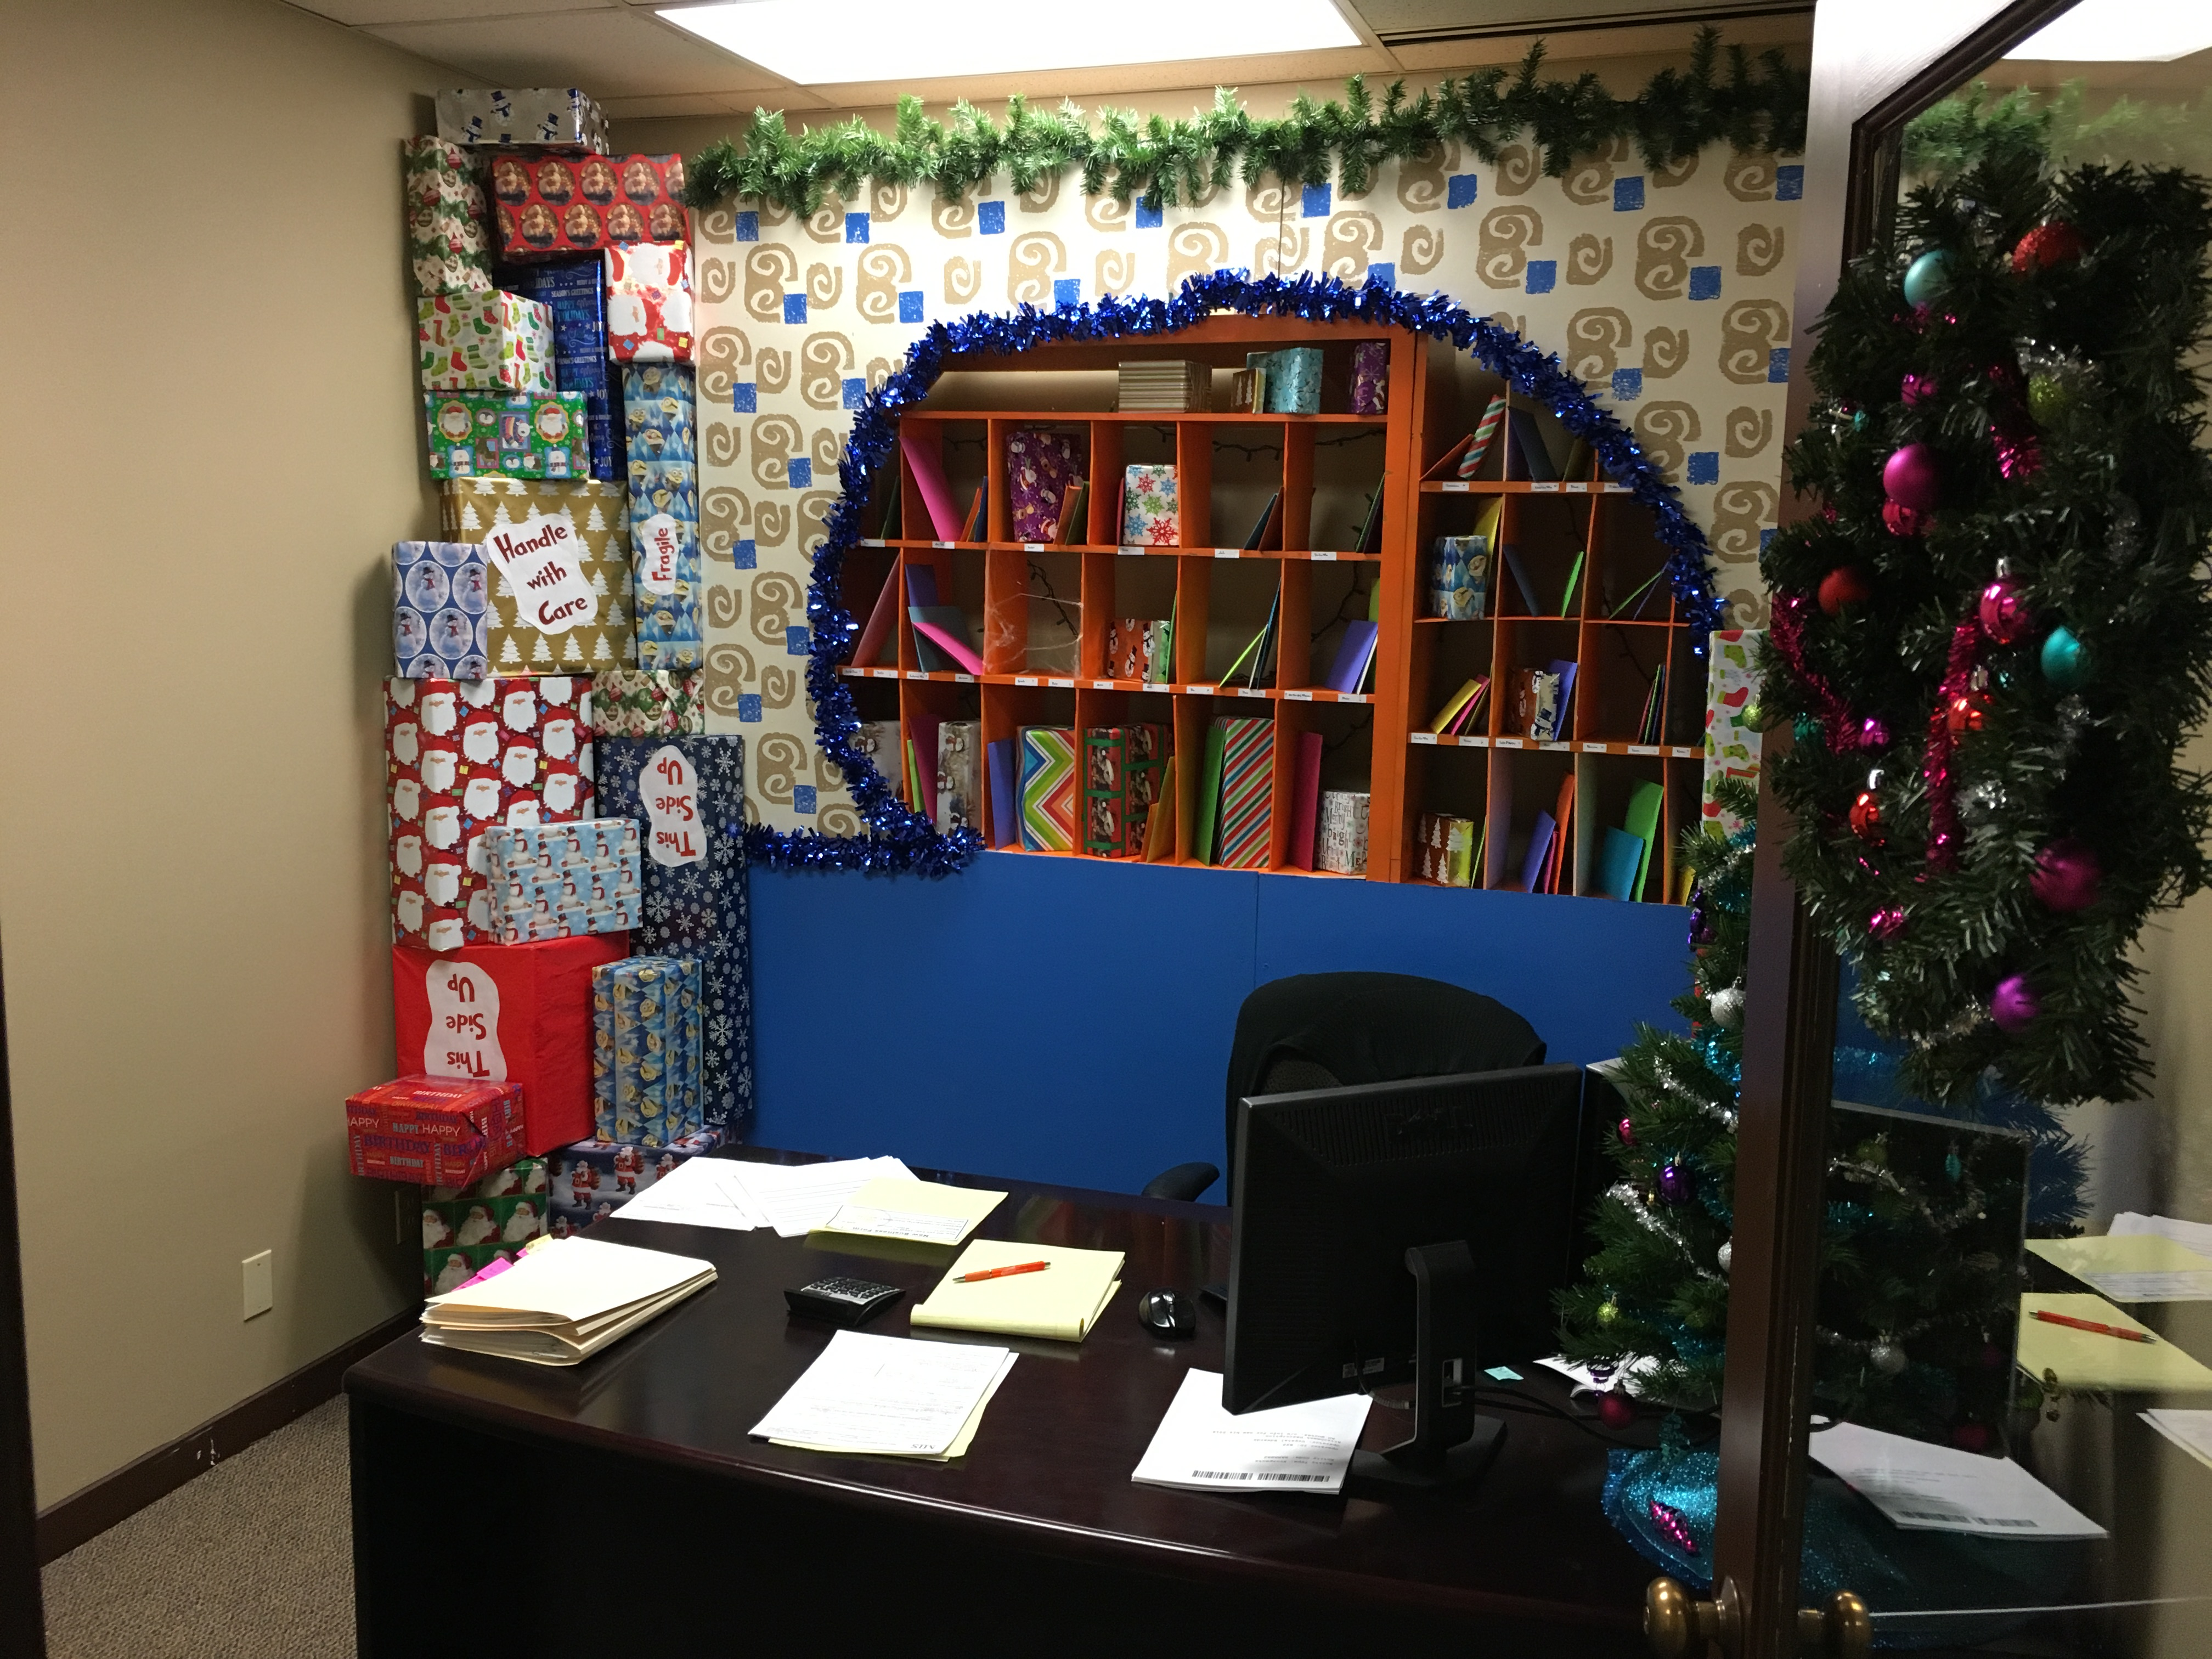 Insurance services group invites all to view 39 christmas cubicles 39 at dec 16 open house my - Post office insurance services ...